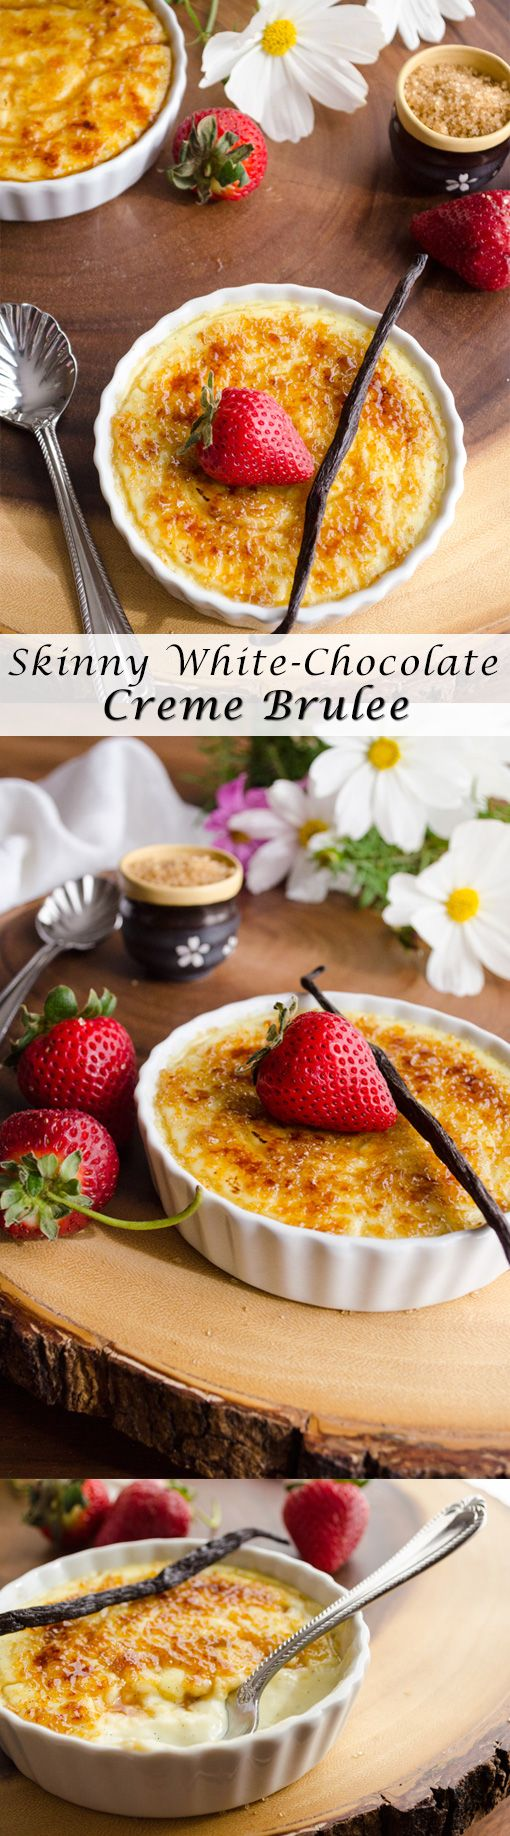 Best 25+ White chocolate creme brulee ideas on Pinterest | French ...